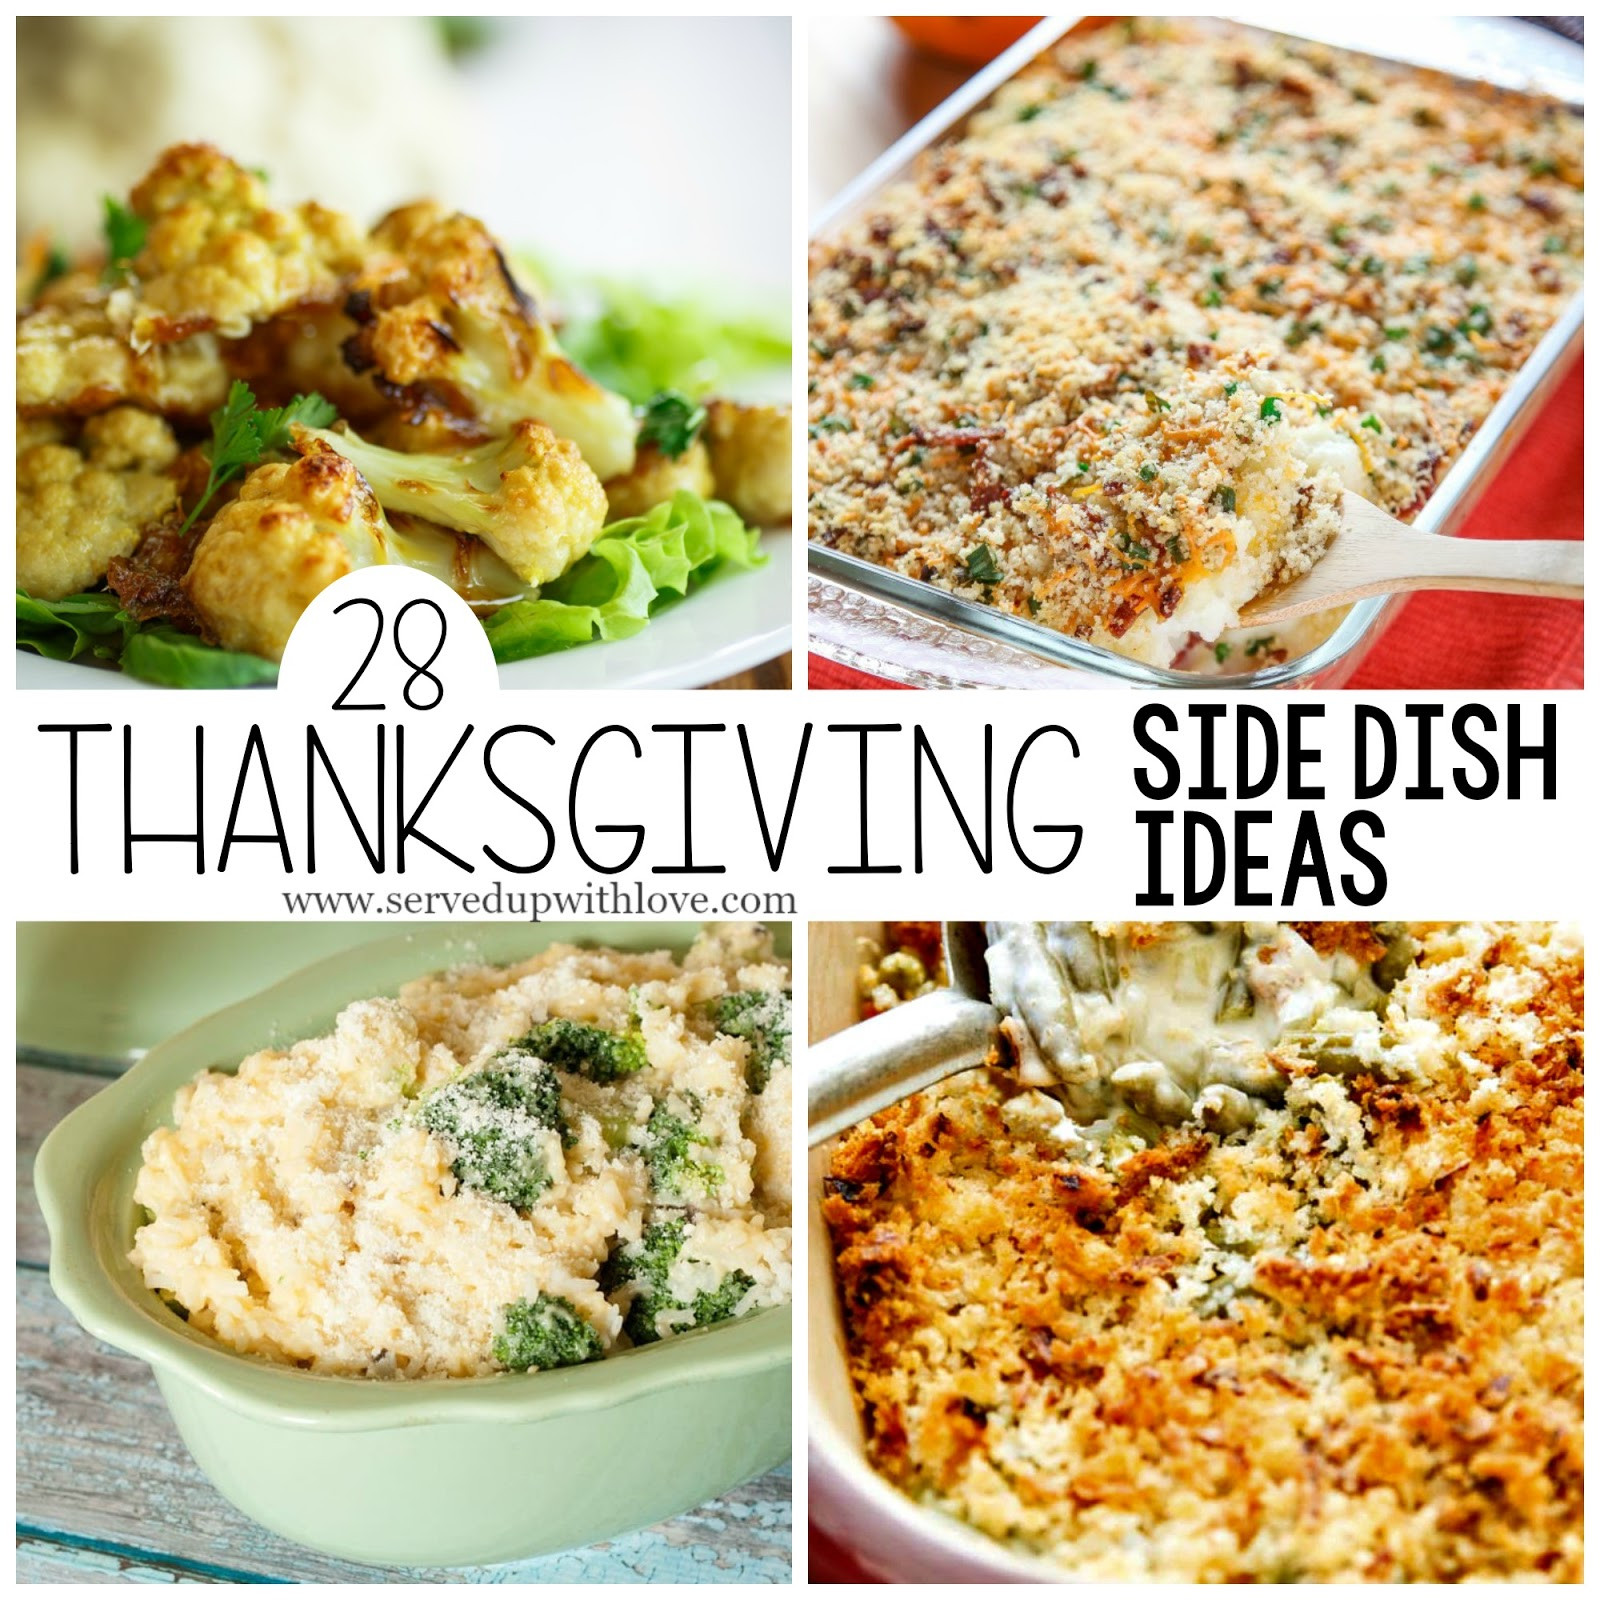 Thanksgiving Side Dishes Ideas  Served Up With Love 28 Thanksgiving Side Dish Ideas